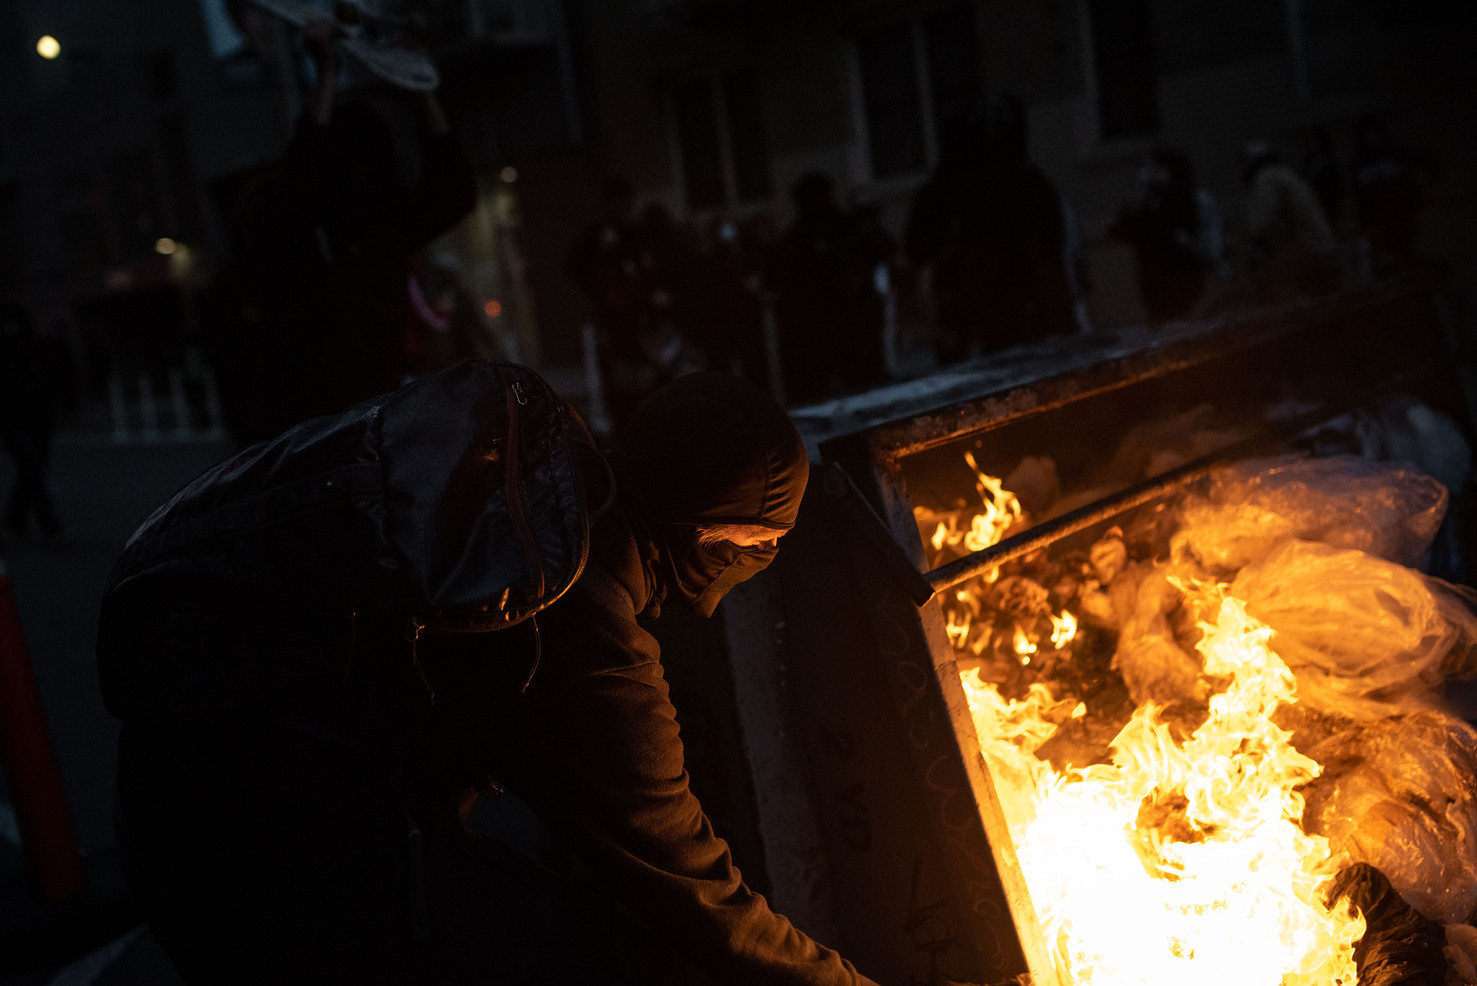 Angry rioters set a dumpster ablaze after curfew as dozens of police in riot gear break up a Black Lives Matter protest at San Francisco City Hall.